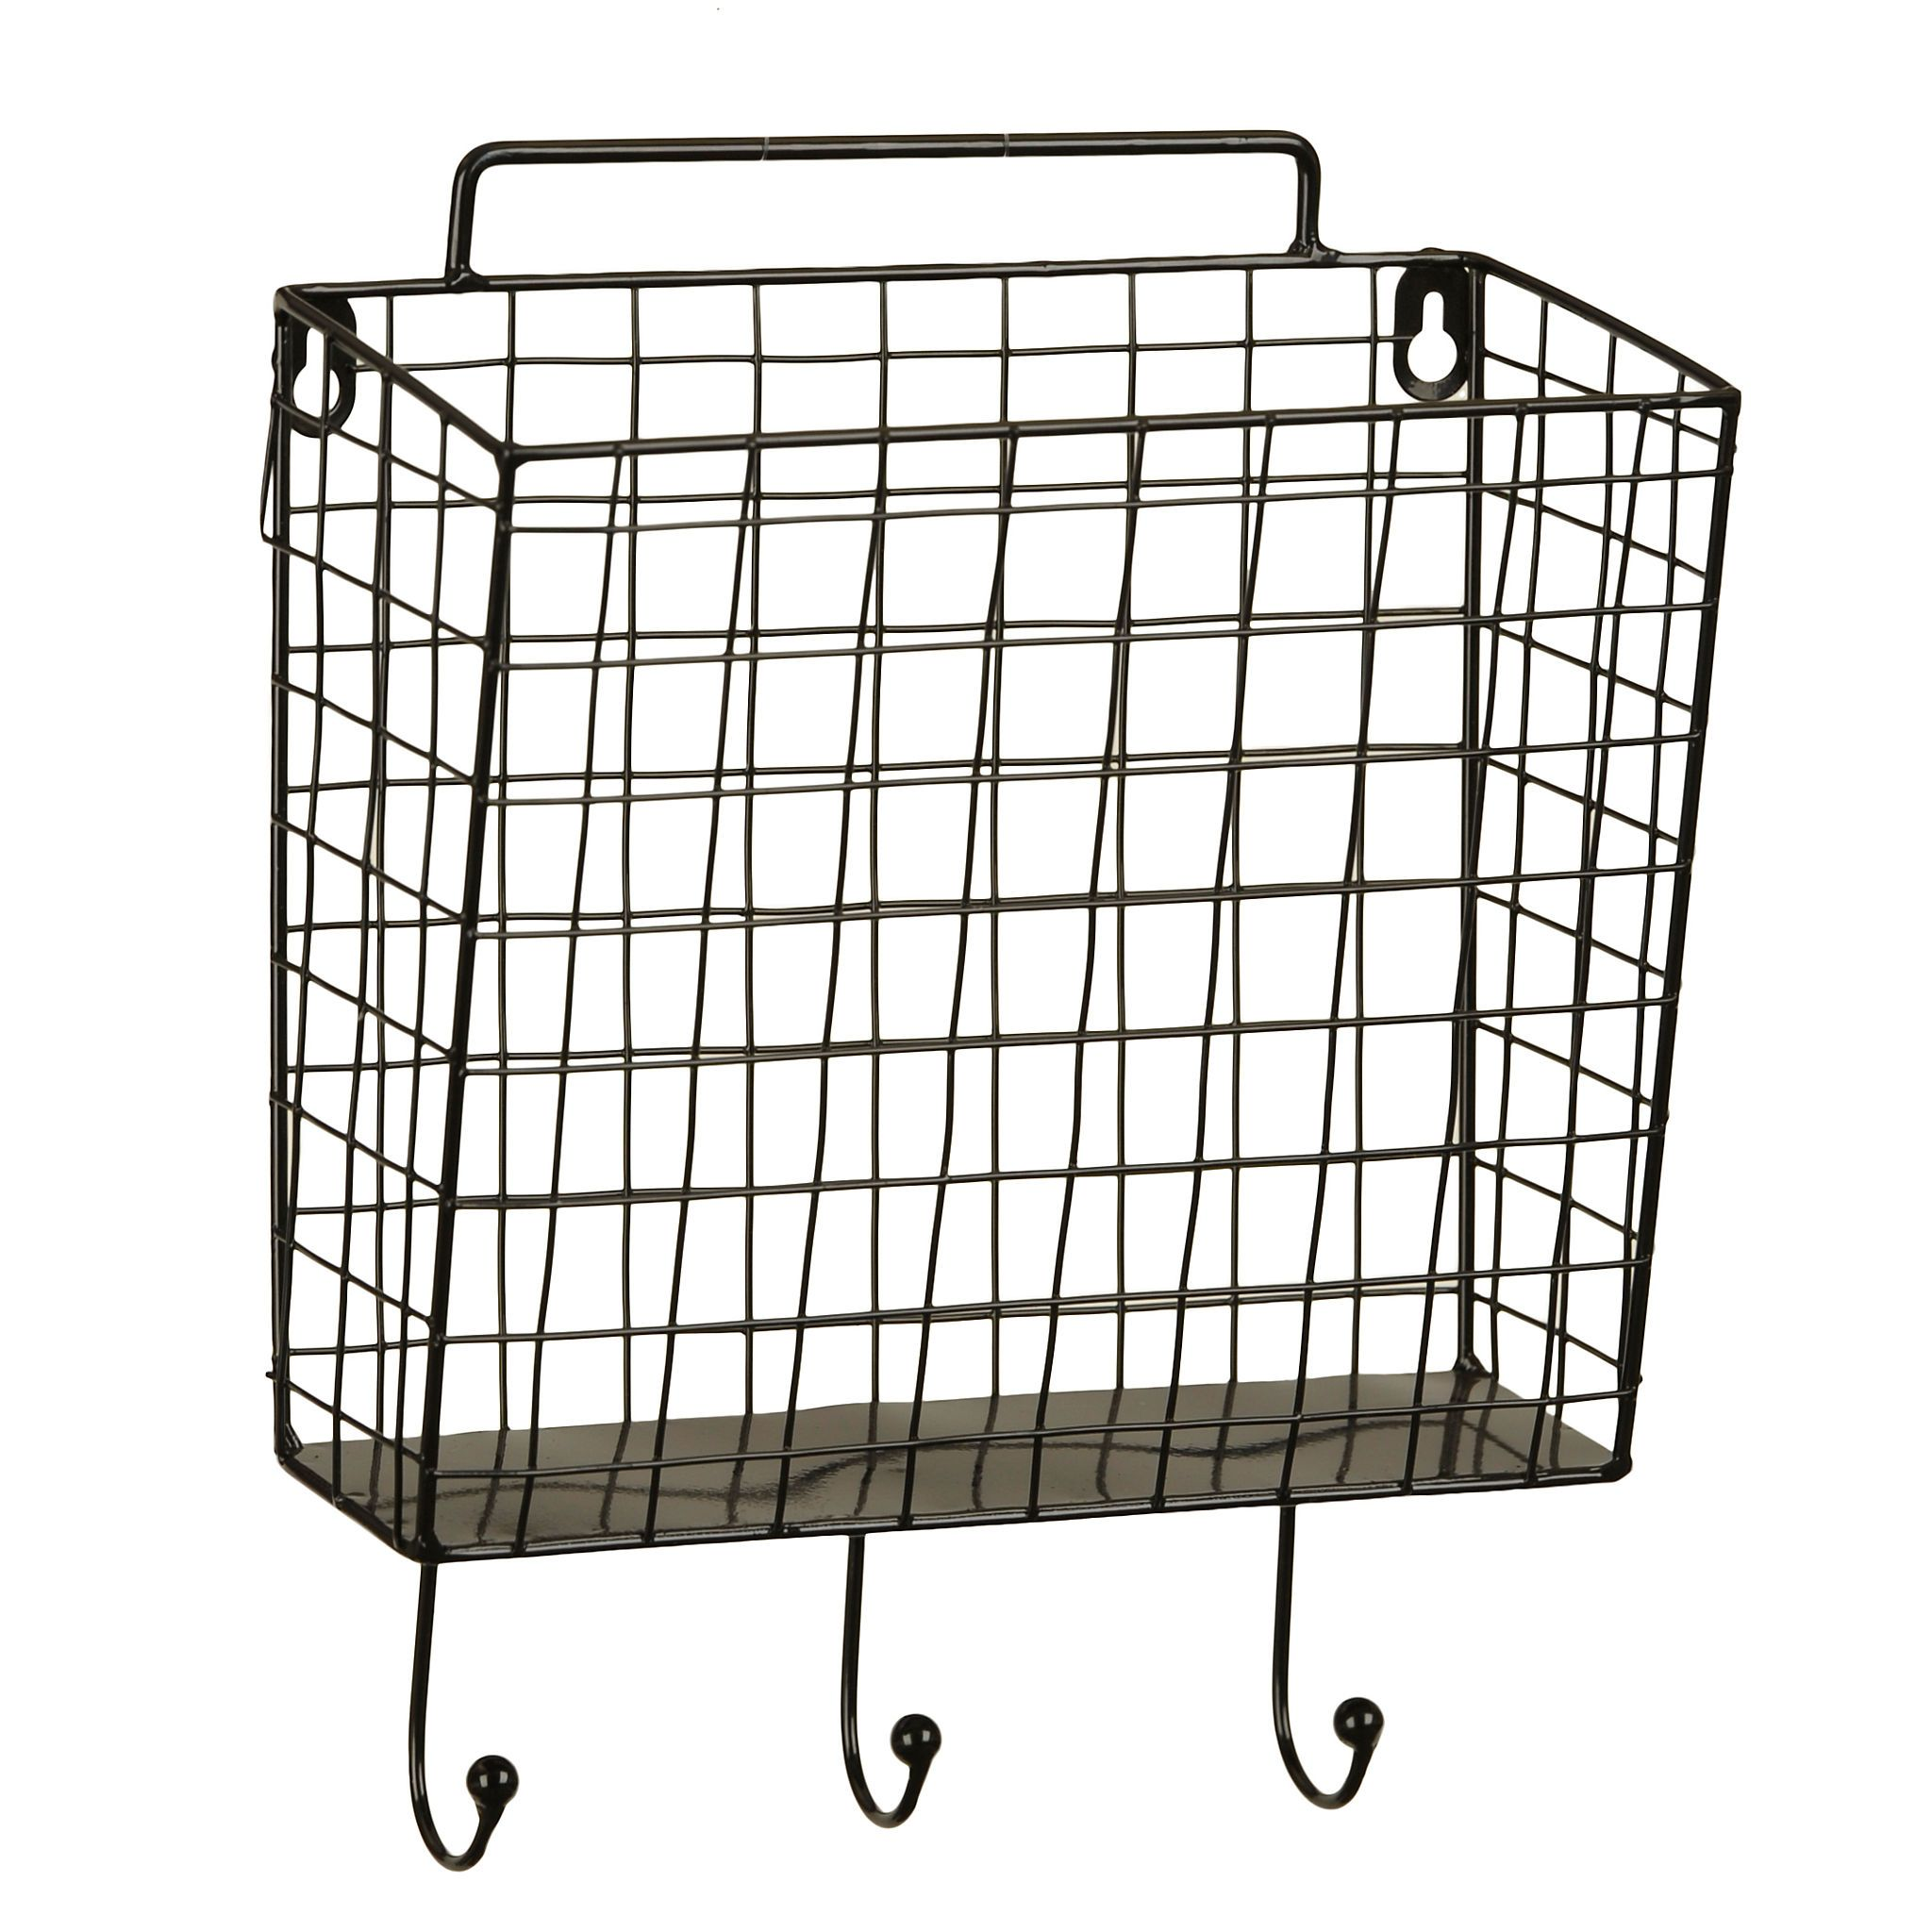 Black Metal Mesh Basket Wall Hook Baskets On Wall Wall Hooks Wall Basket Storage